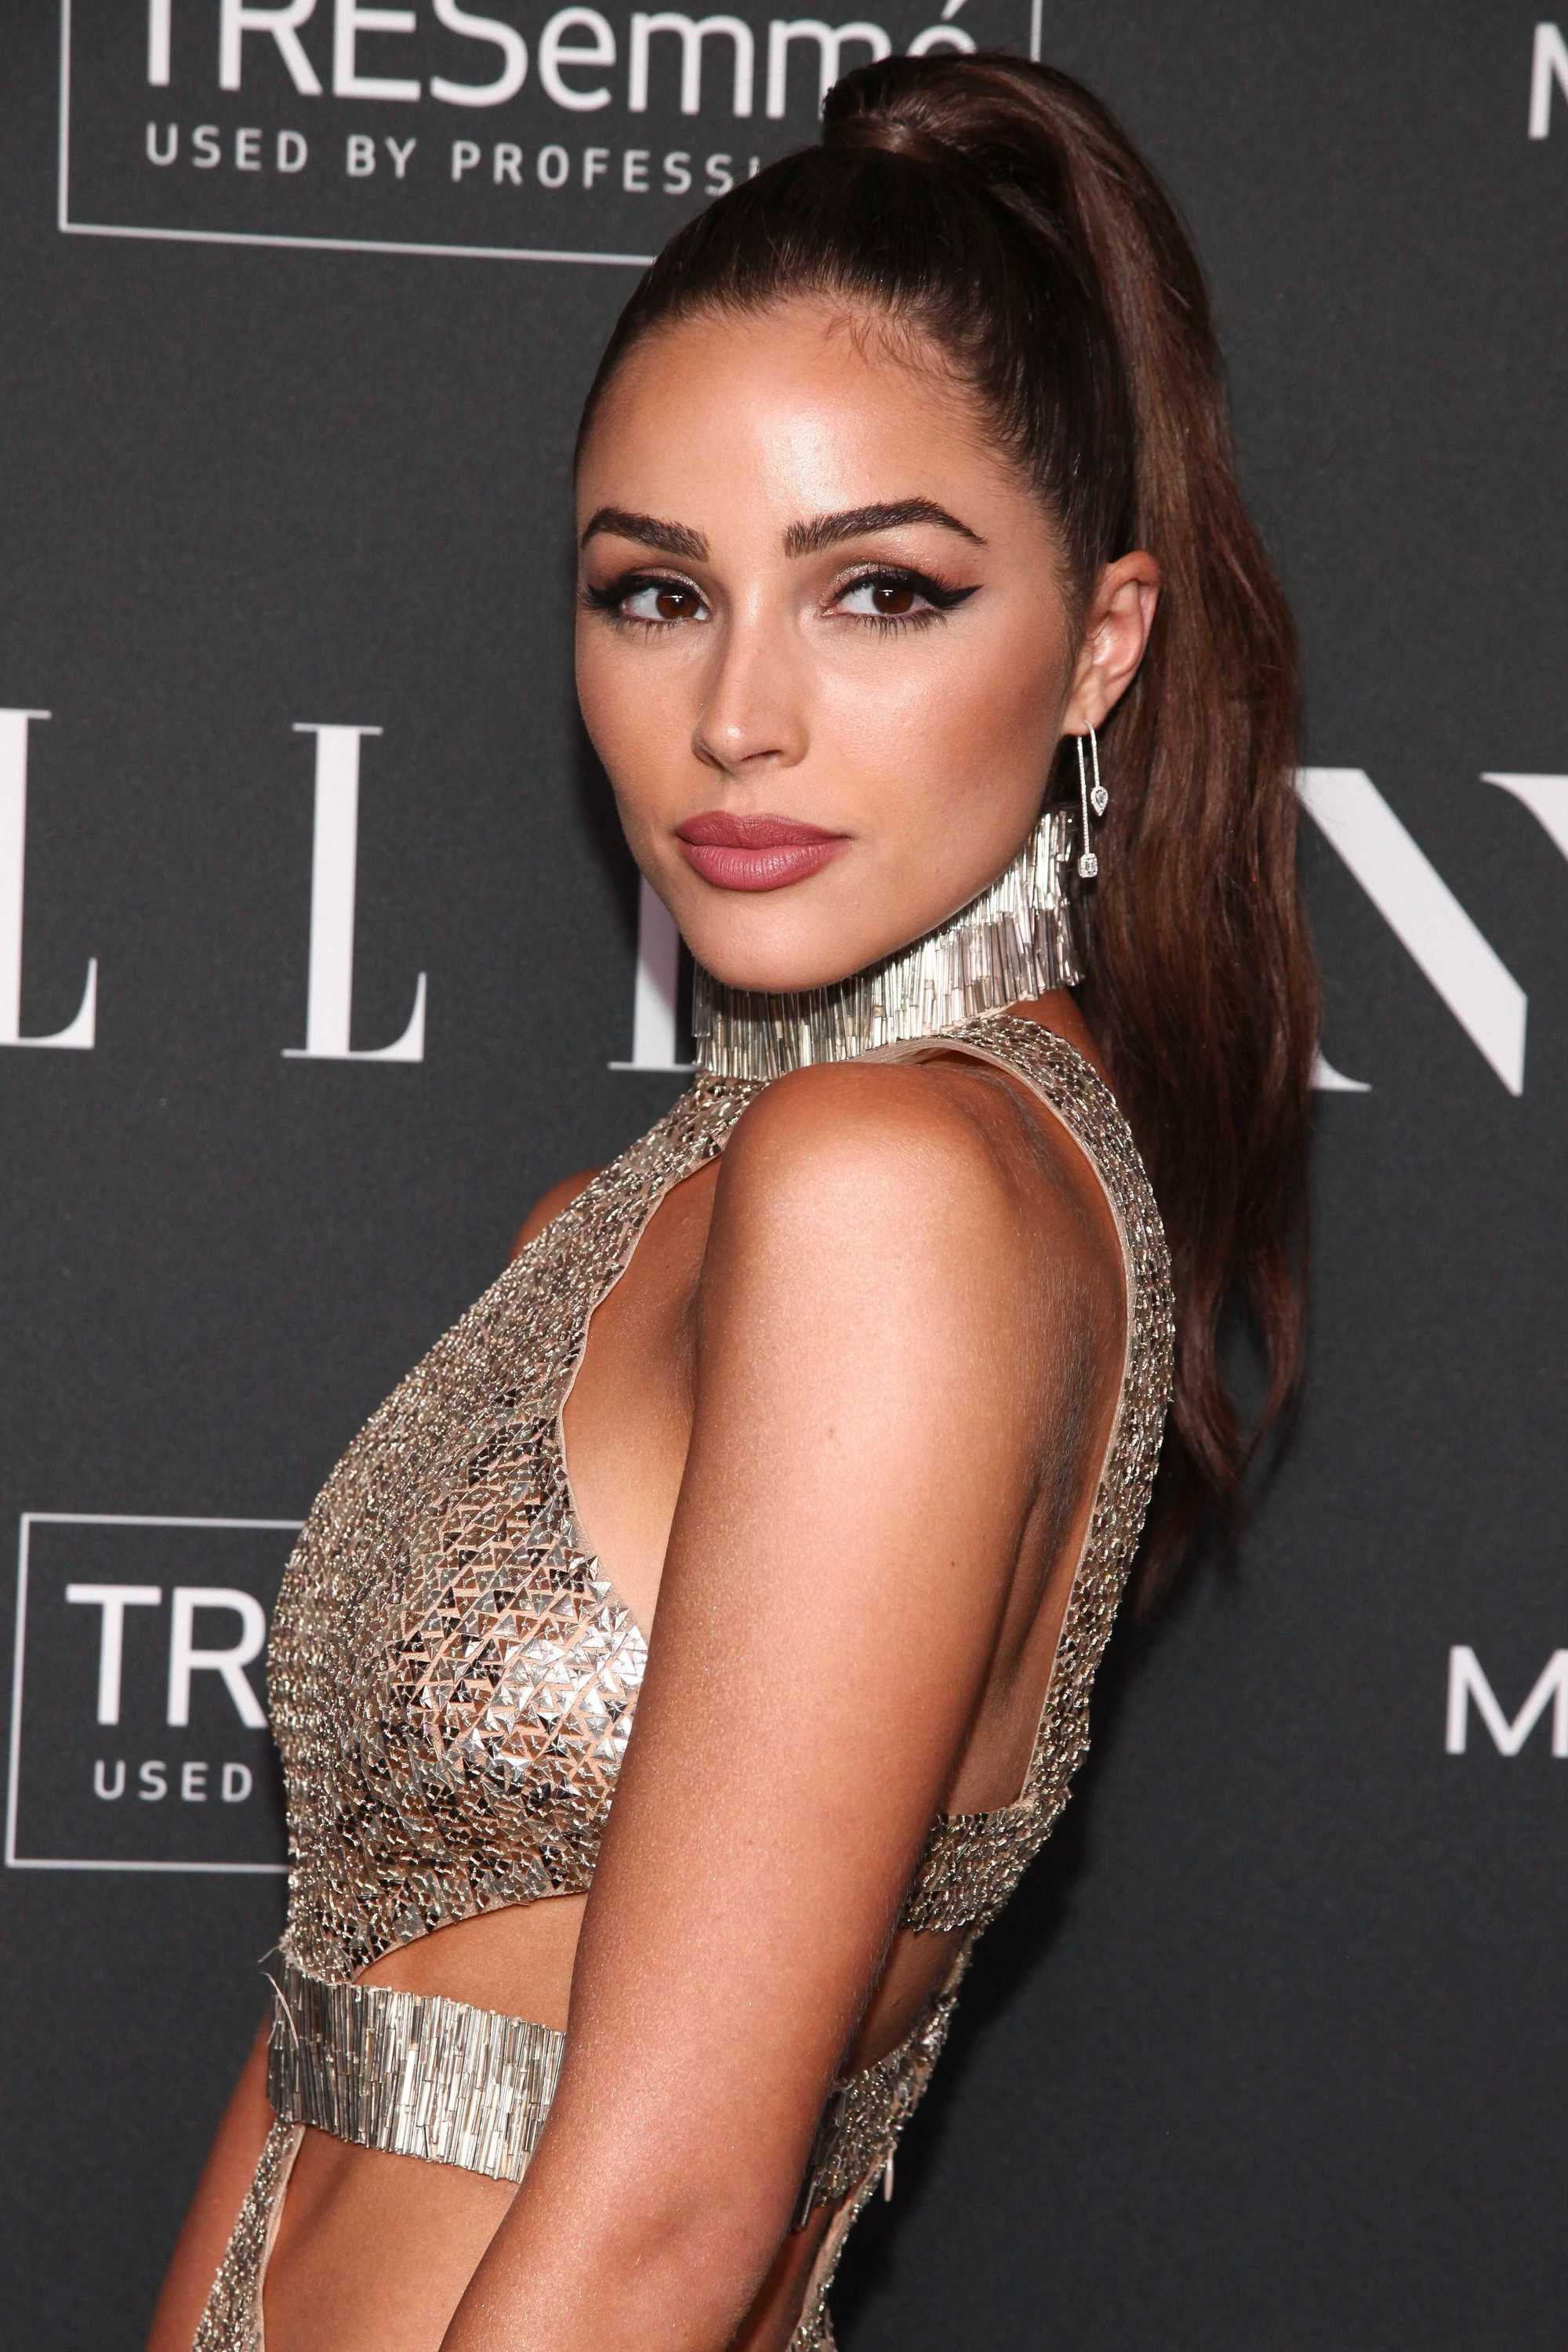 Winter hairstyles 2018: Olivia Culpo with her dark chocolate hair in a glamorous wrapped high ponytail, wearing a metallic mesh cut-out dress